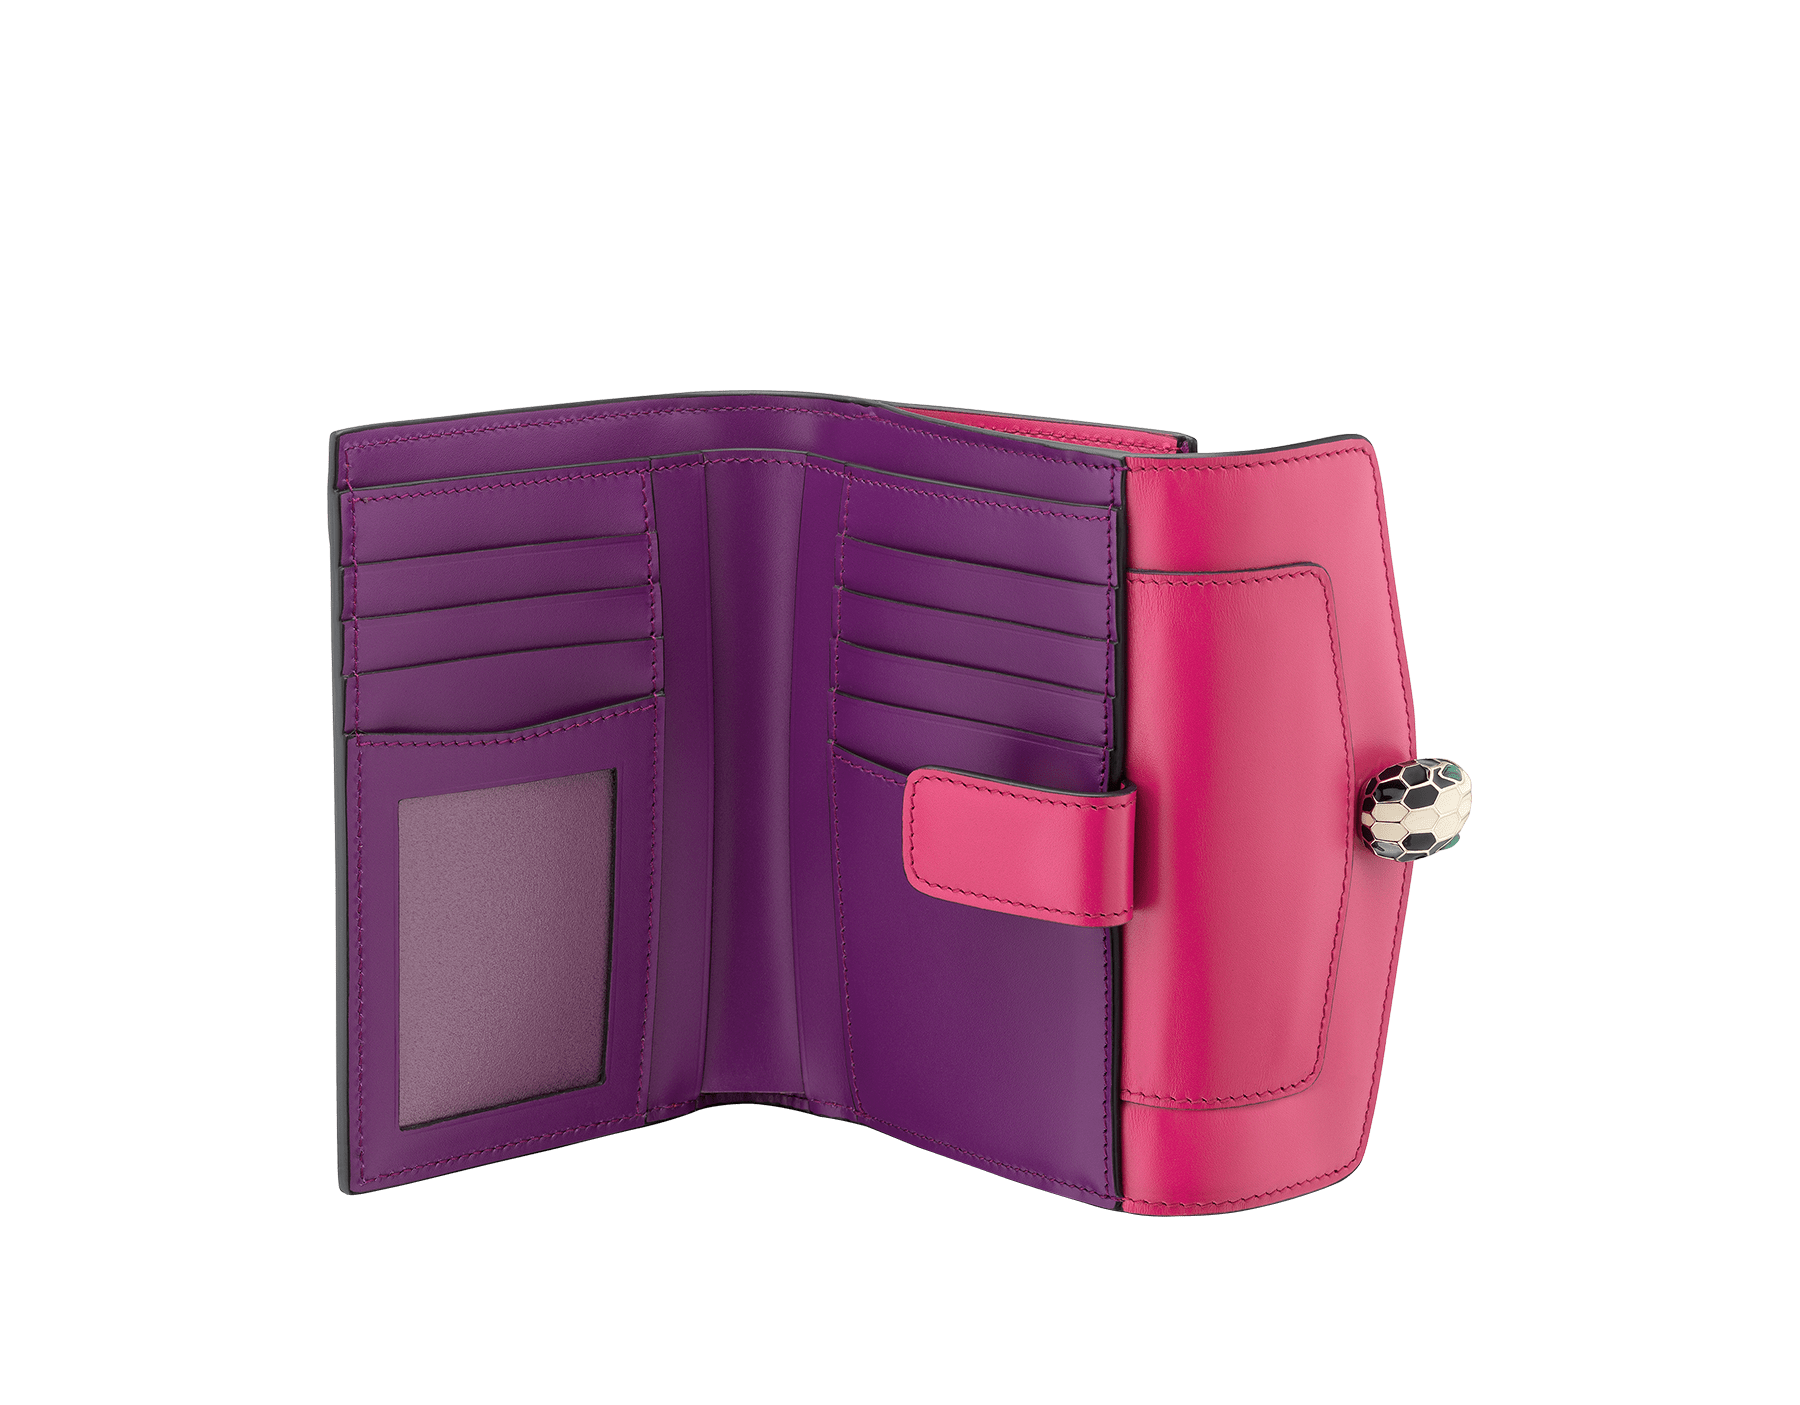 Serpenti Forever compact pochette in jazzy tourmaline and aster amethyst calf leather. Iconic snakehead stud closure in black and white enamel, with green malachite eyes. 287142 image 2